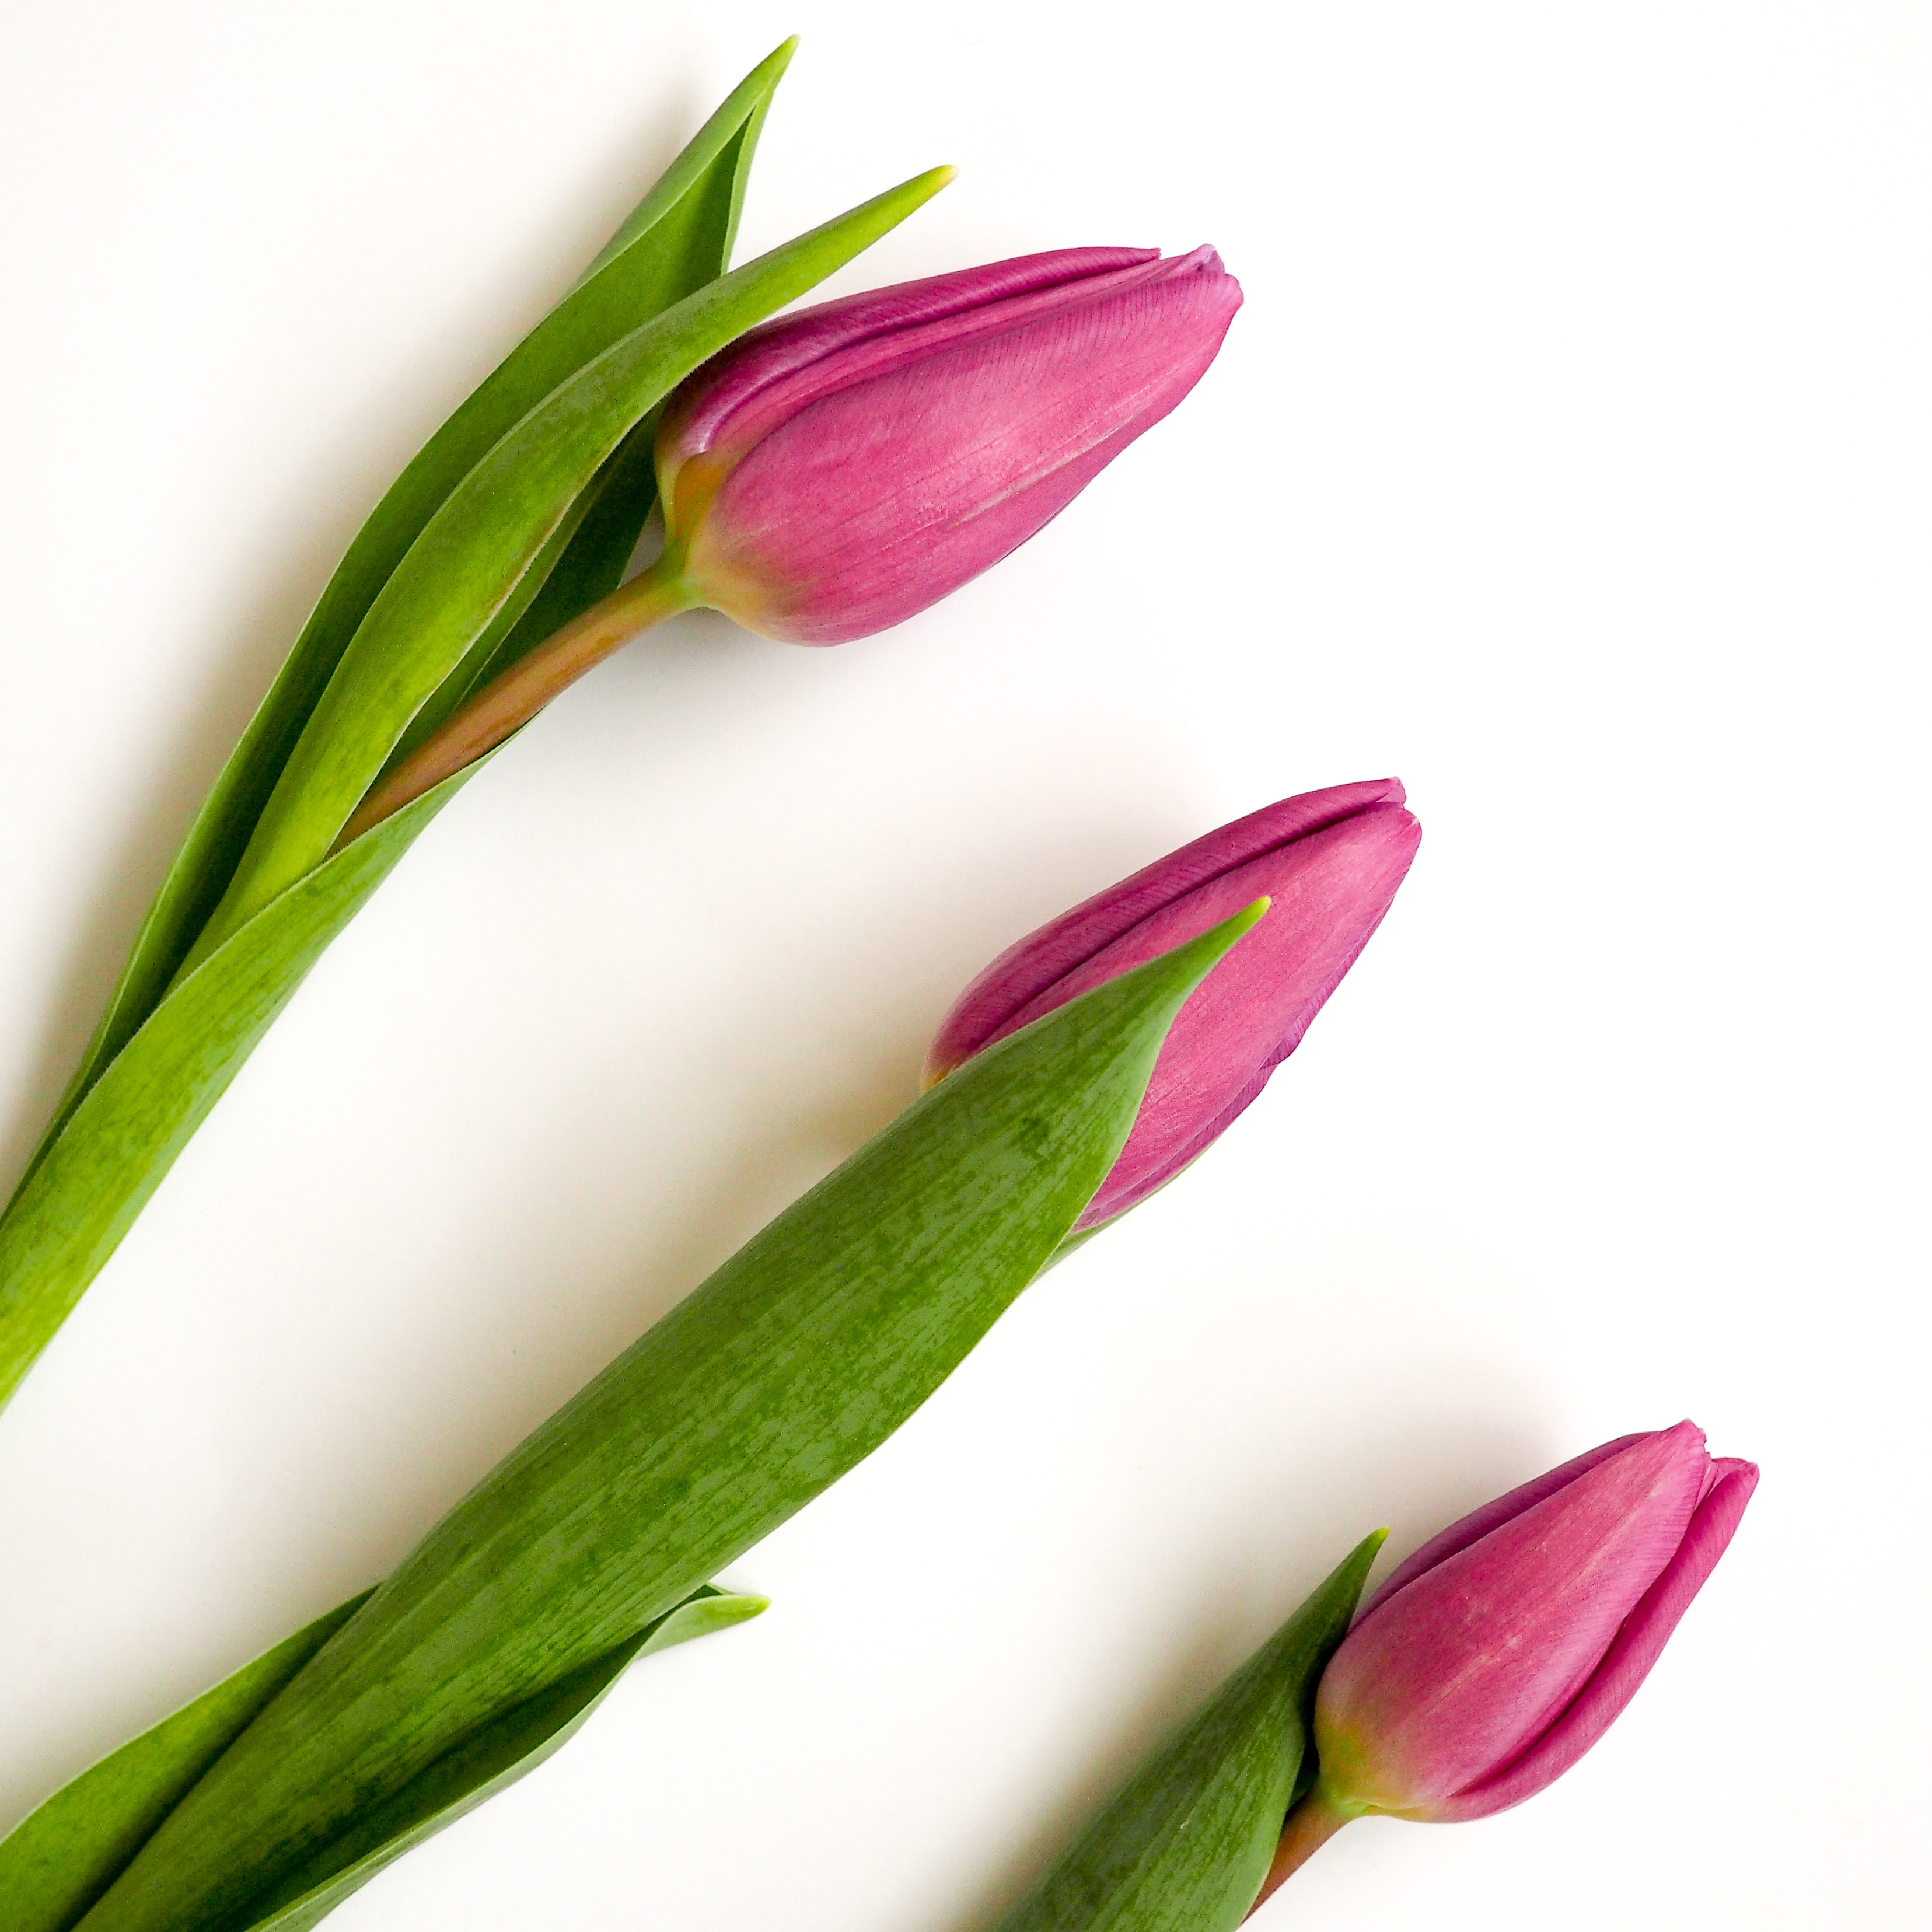 An overhead shot of three purple tulips on a white surface